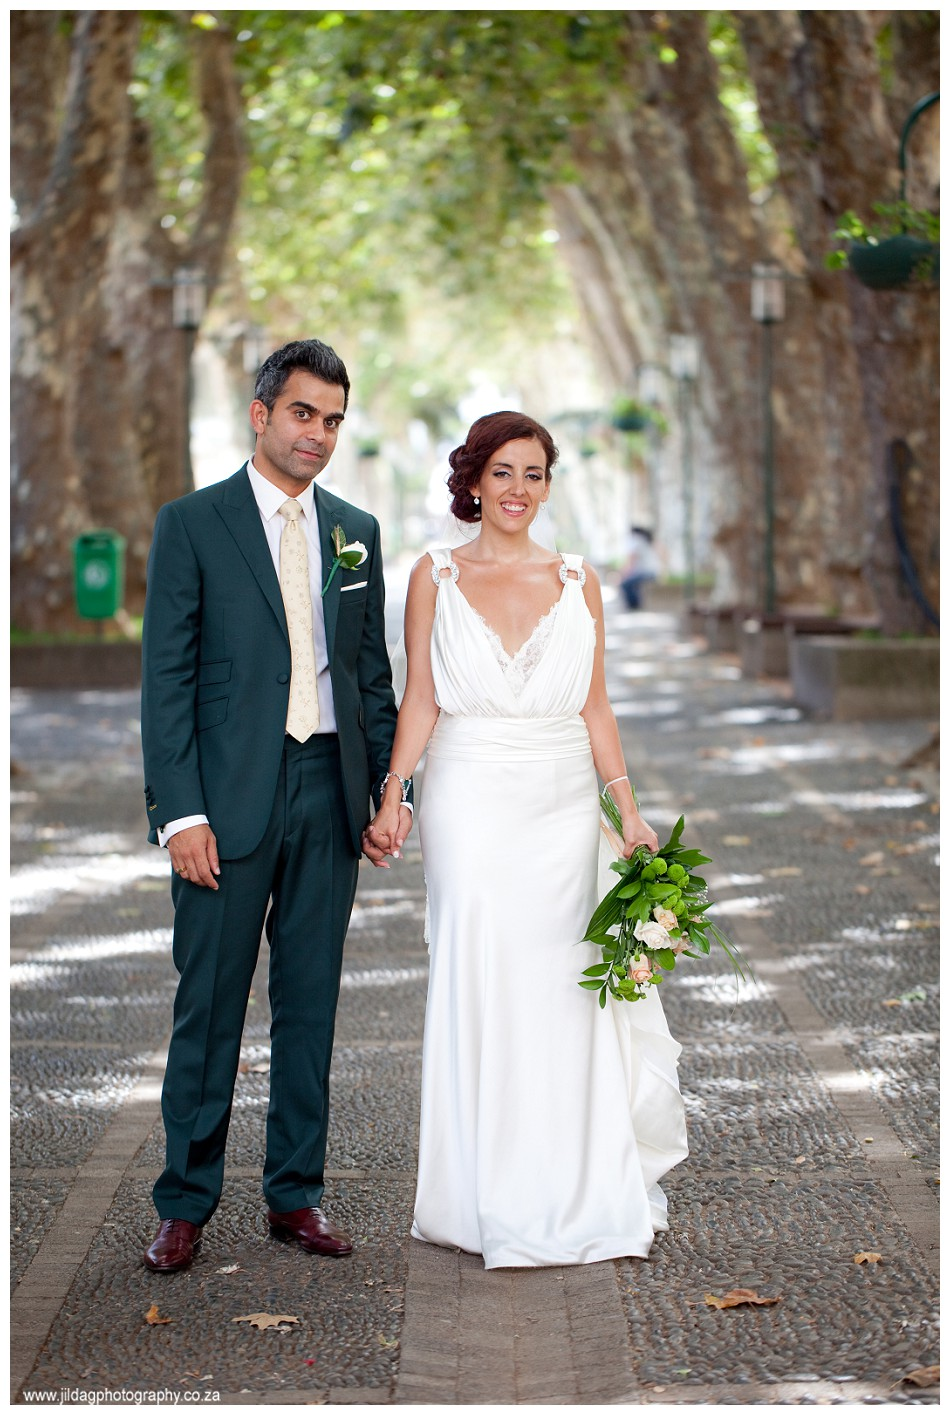 Destination wedding, Madeira, Portugal wedding, Jilda G Photography (89)